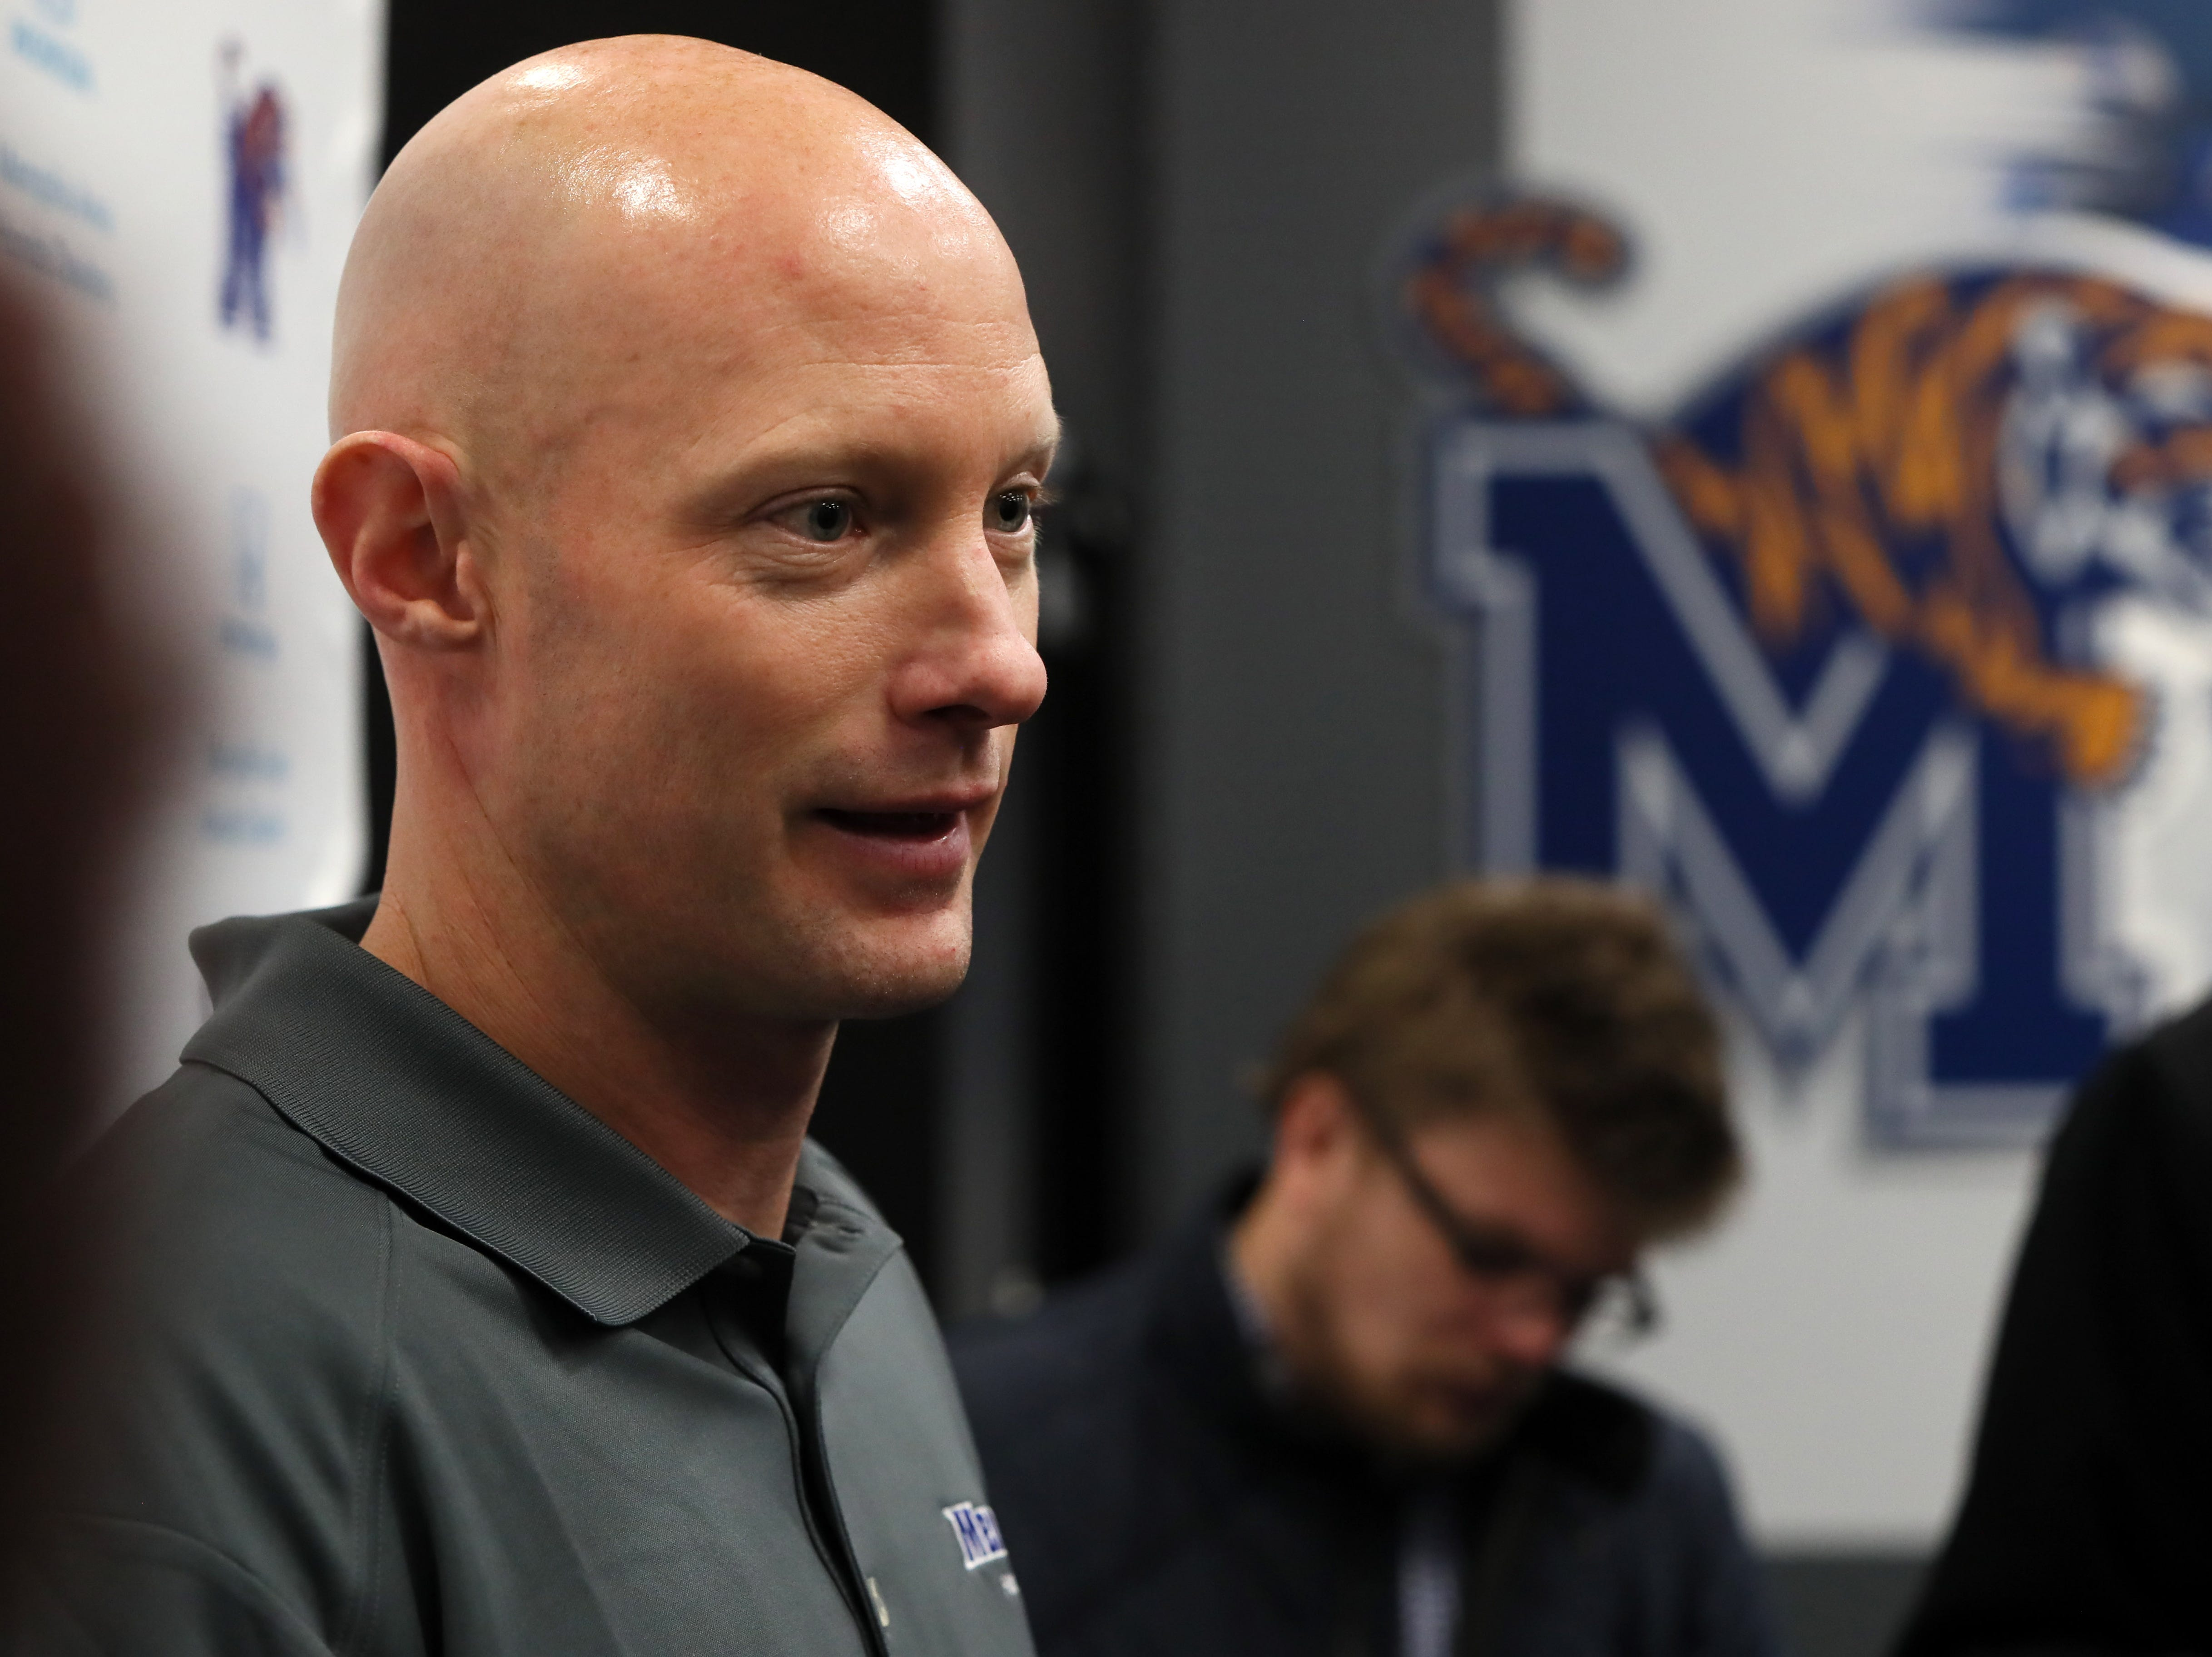 Memphis Tigers Offensive Coordinator Kevin Johns talks to reporters during a press conference to introduce new coaching staff members on the university's campus Saturday, Jan. 12, 2019.